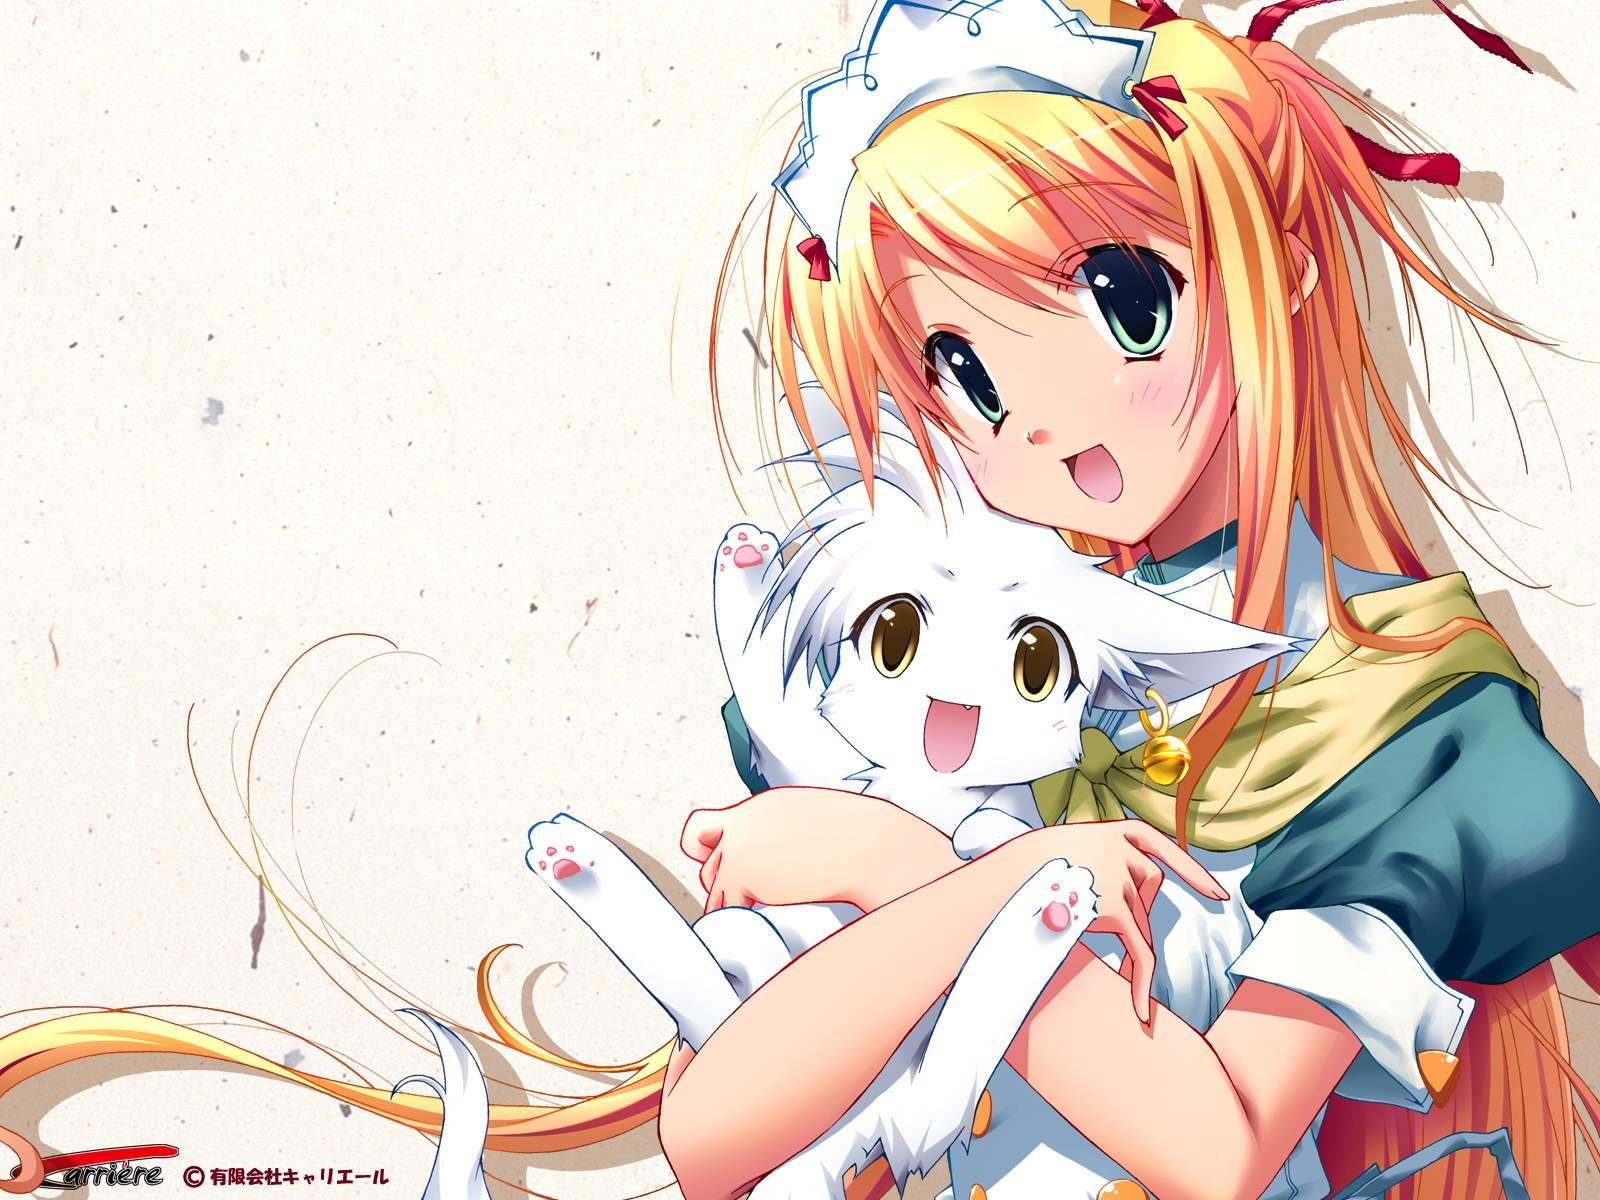 Cute Anime Wallpaper